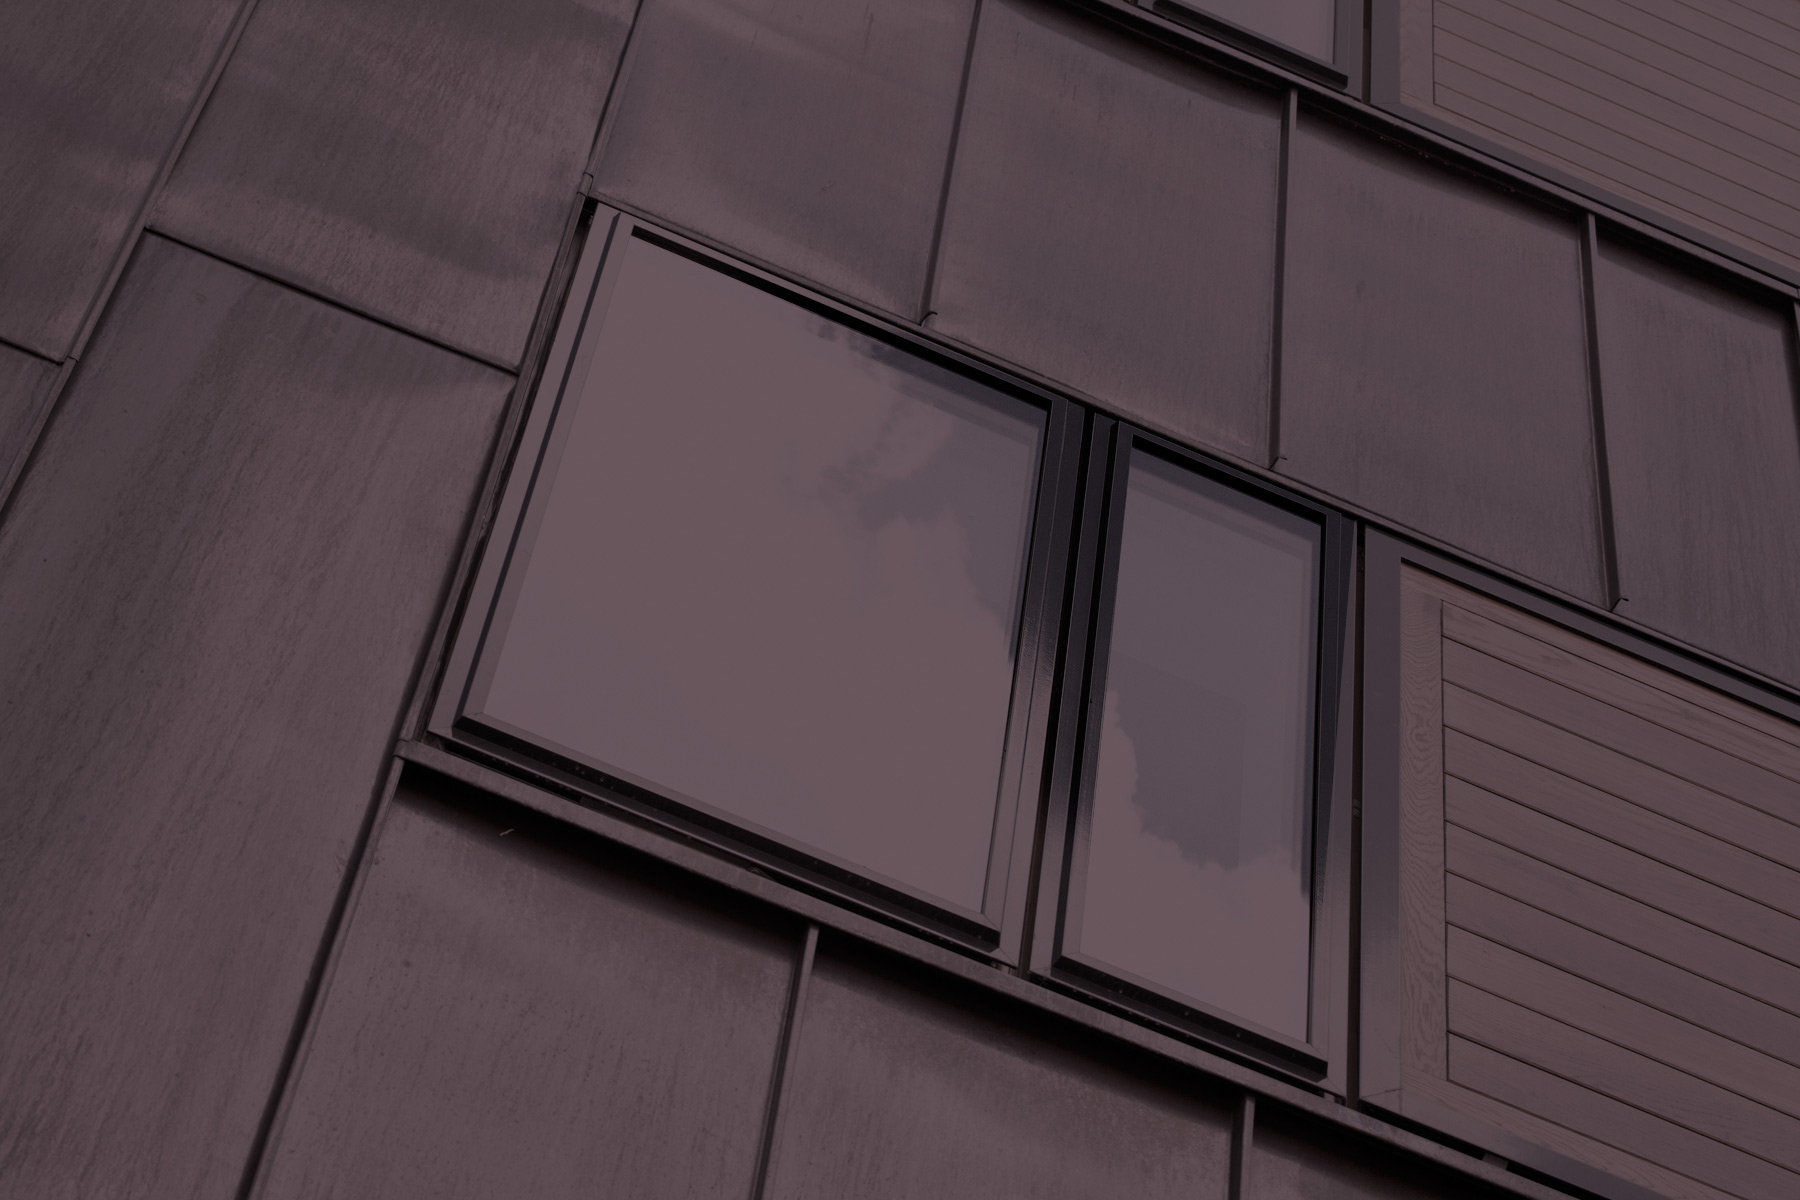 CAWD_CityandWest_Cladding1